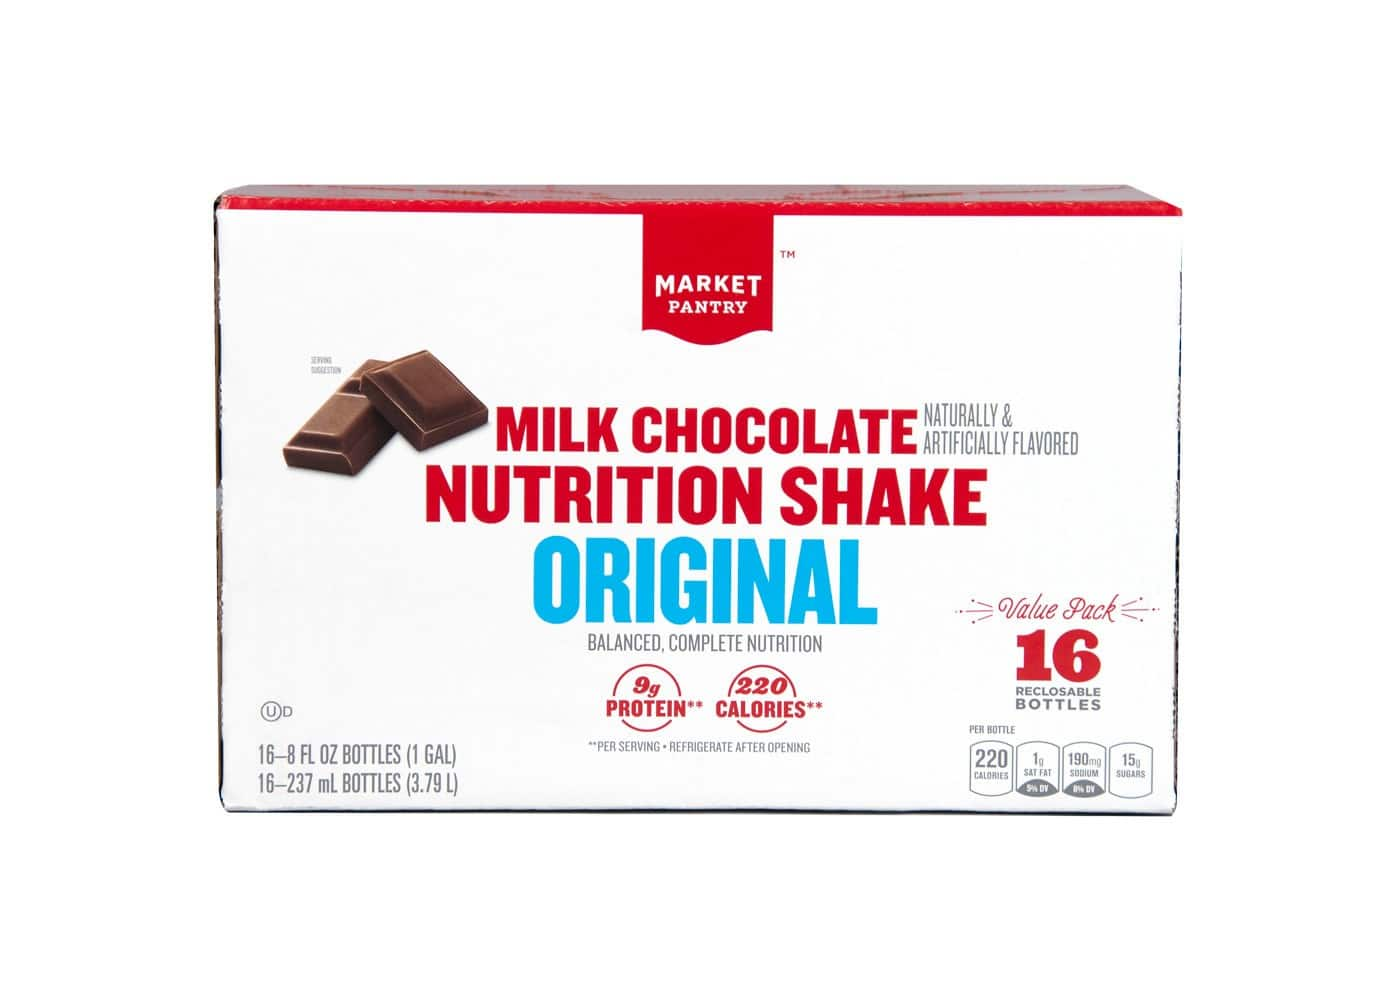 Market Pantry Original Milk Chocolate Shake (16ct) for $5.64 (clearance + subscription discount) @ Target